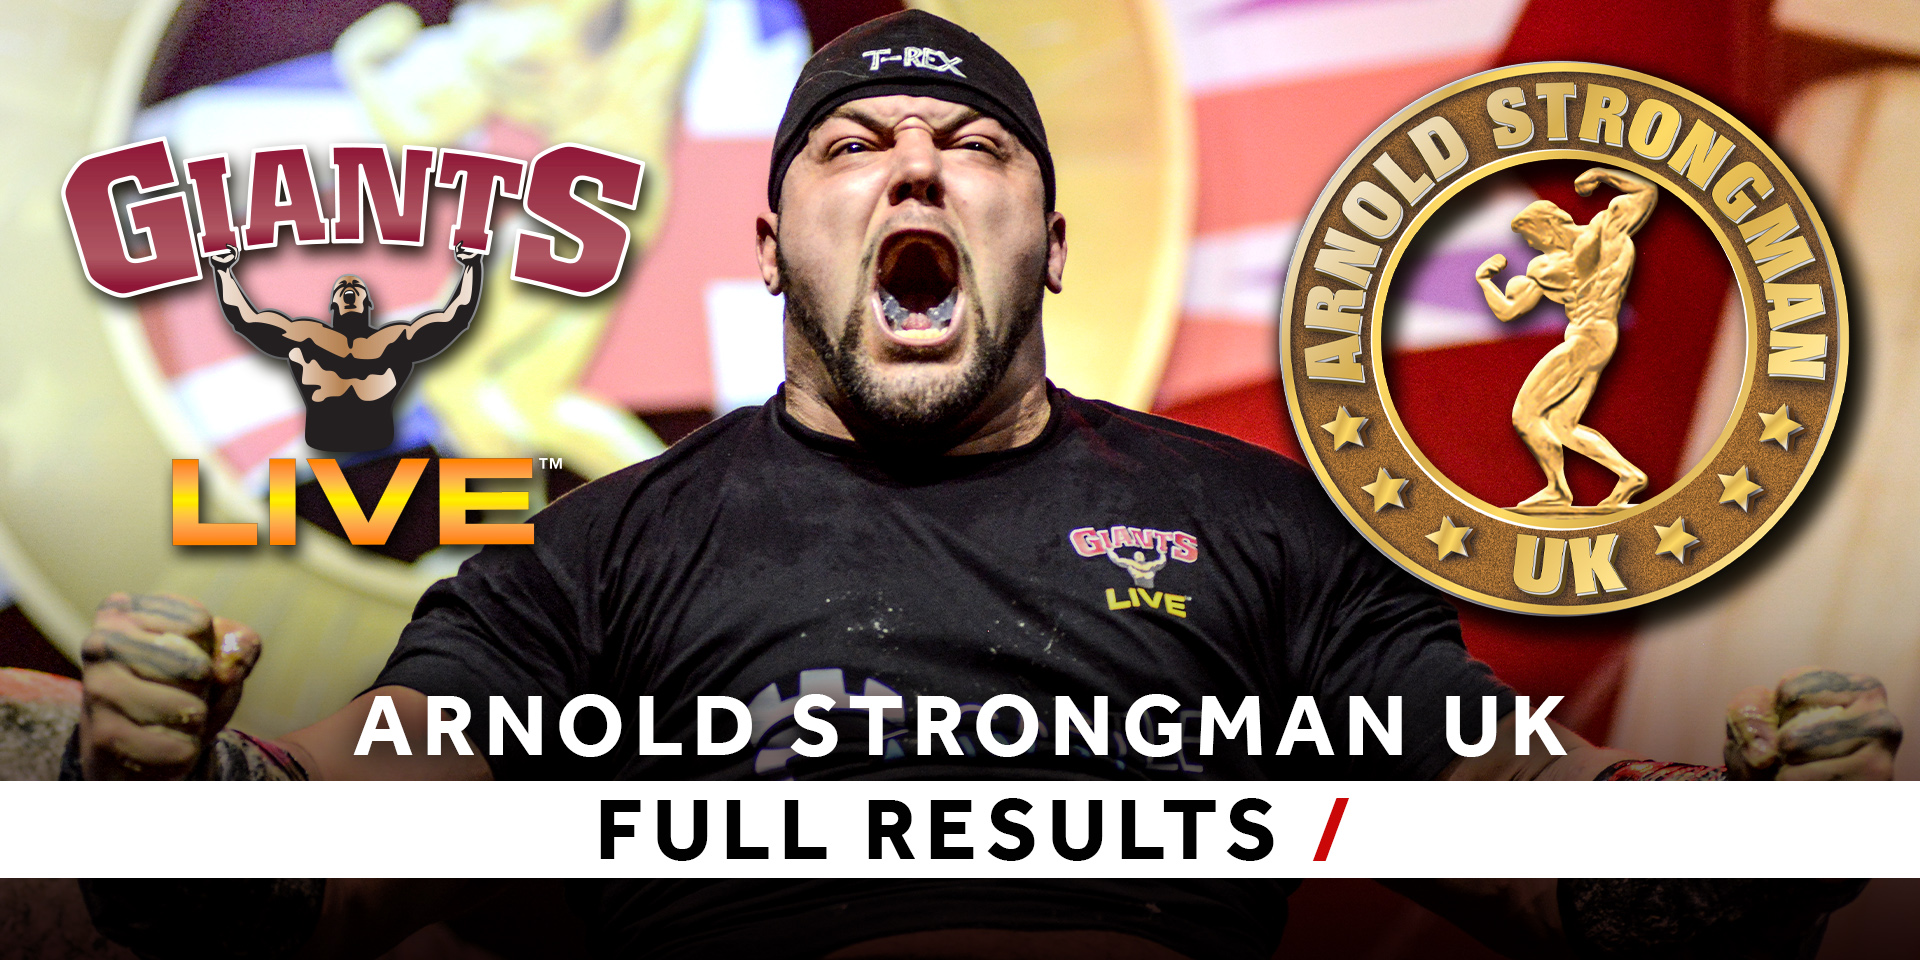 Giants Live Arnold Classic RESULTS